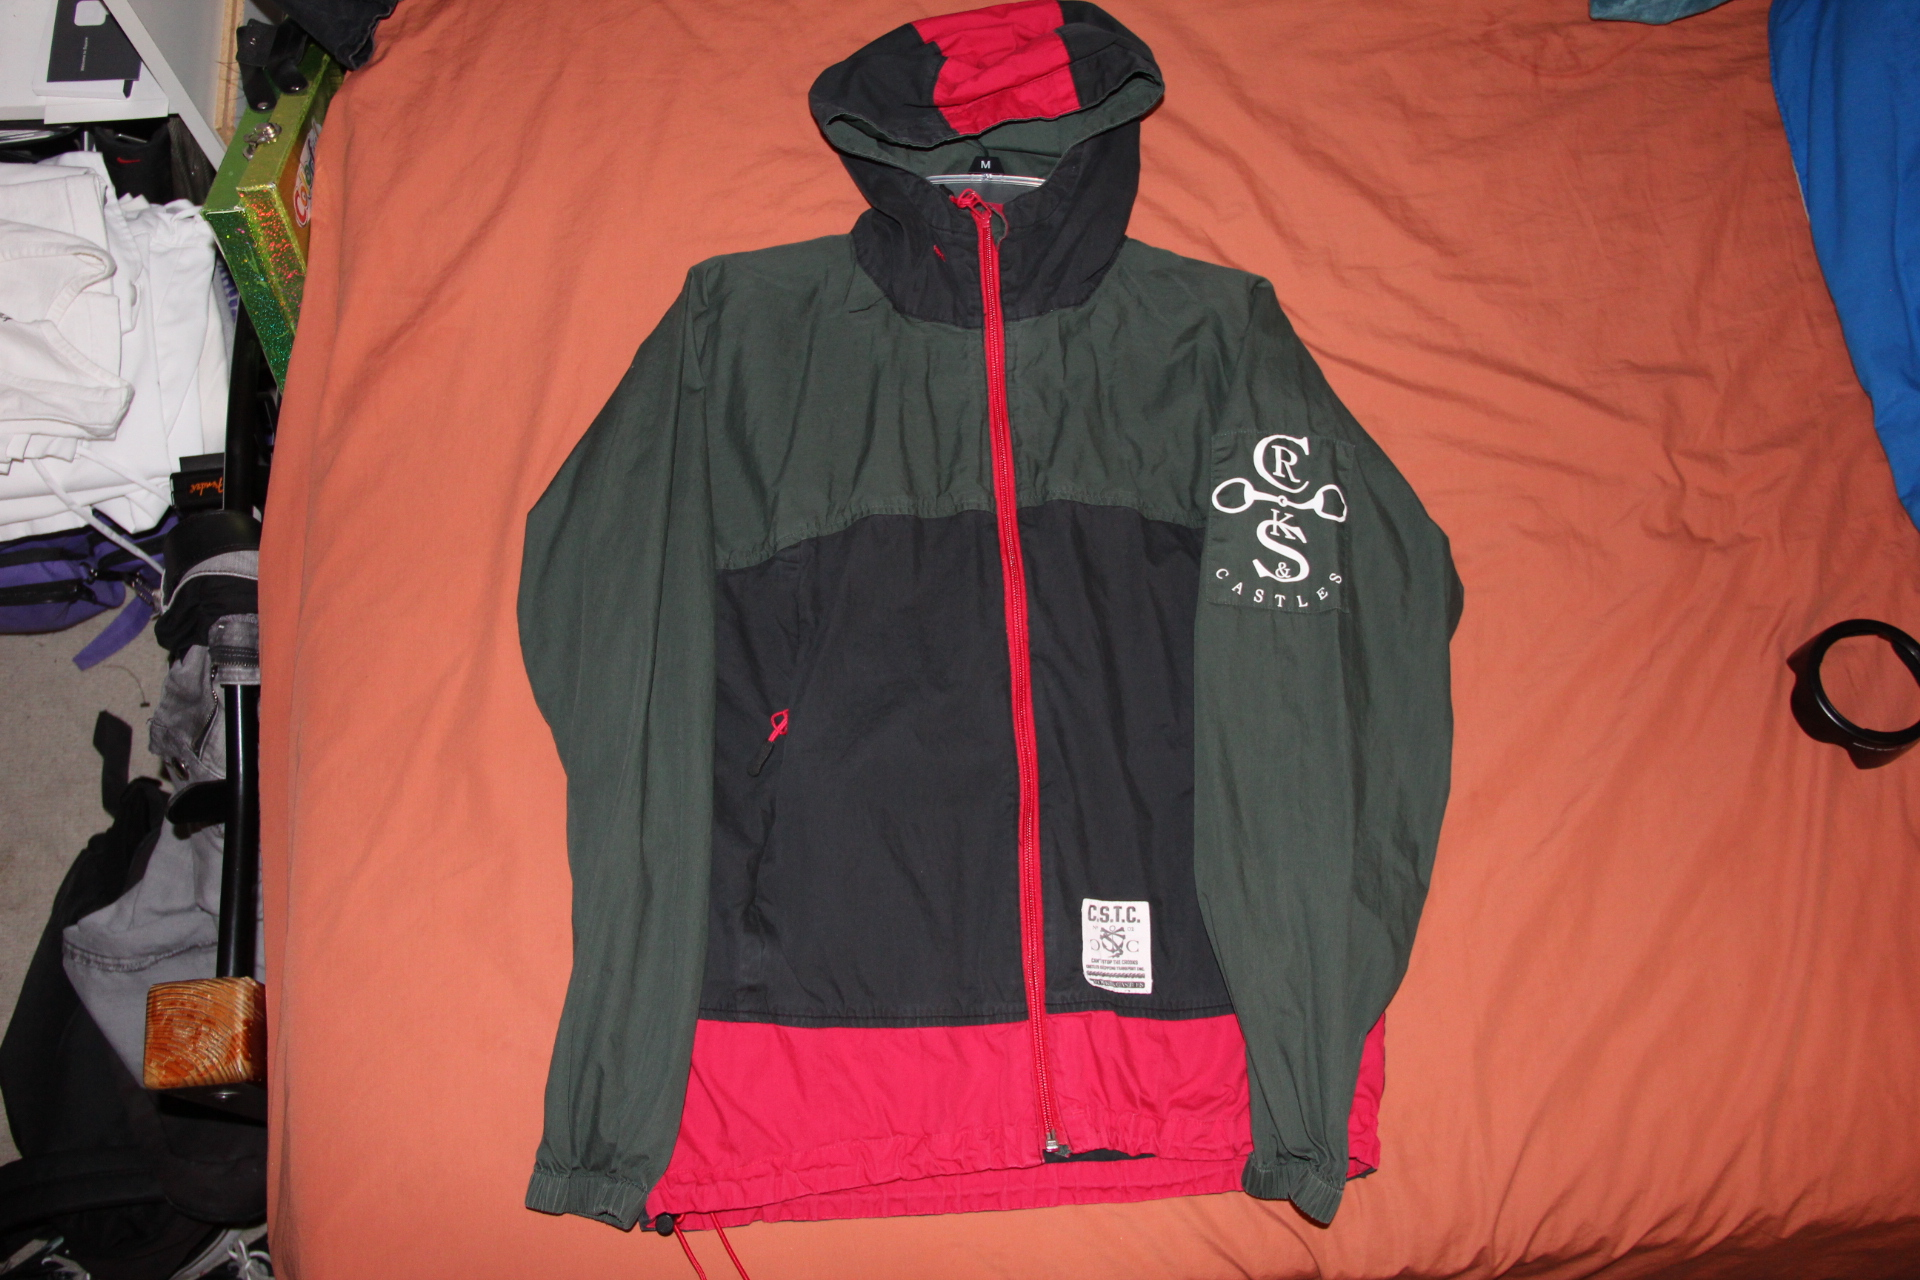 3f533051636 Crooks and castles gucci colorway windbreaker sz small